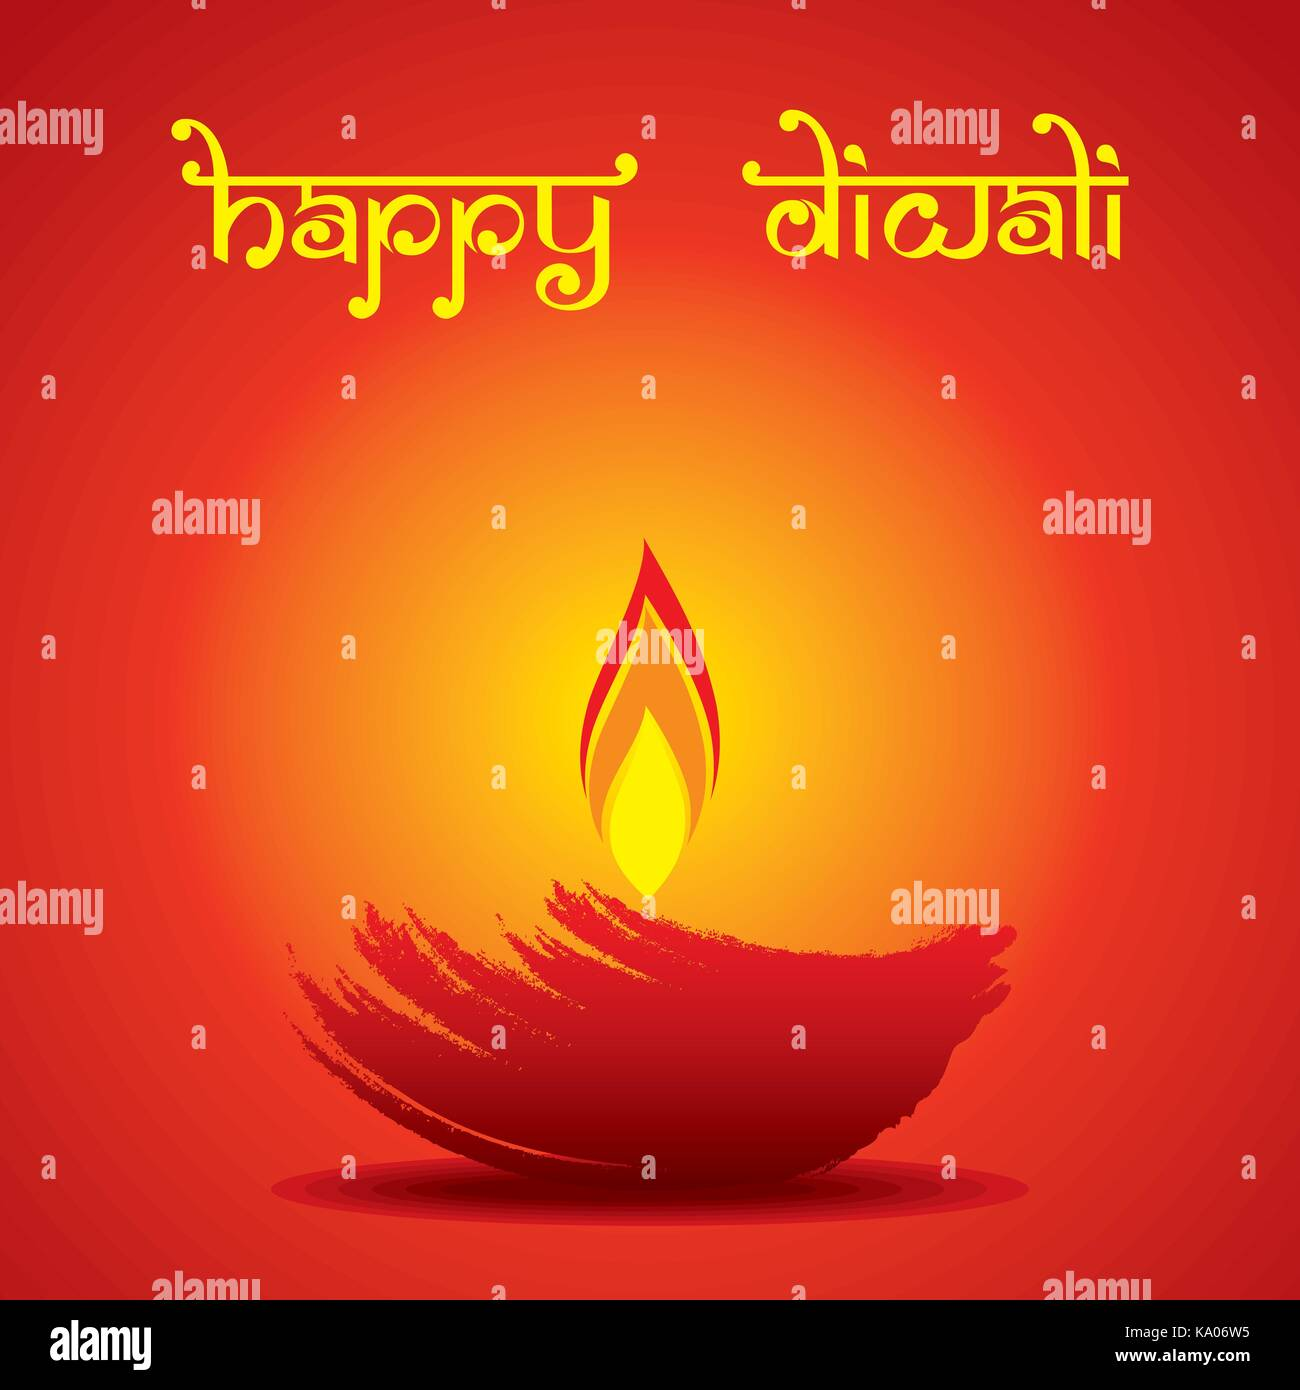 A beautiful greeting card with decorated abstract diya diwali stock a beautiful greeting card with decorated abstract diya diwali festival celebration design m4hsunfo